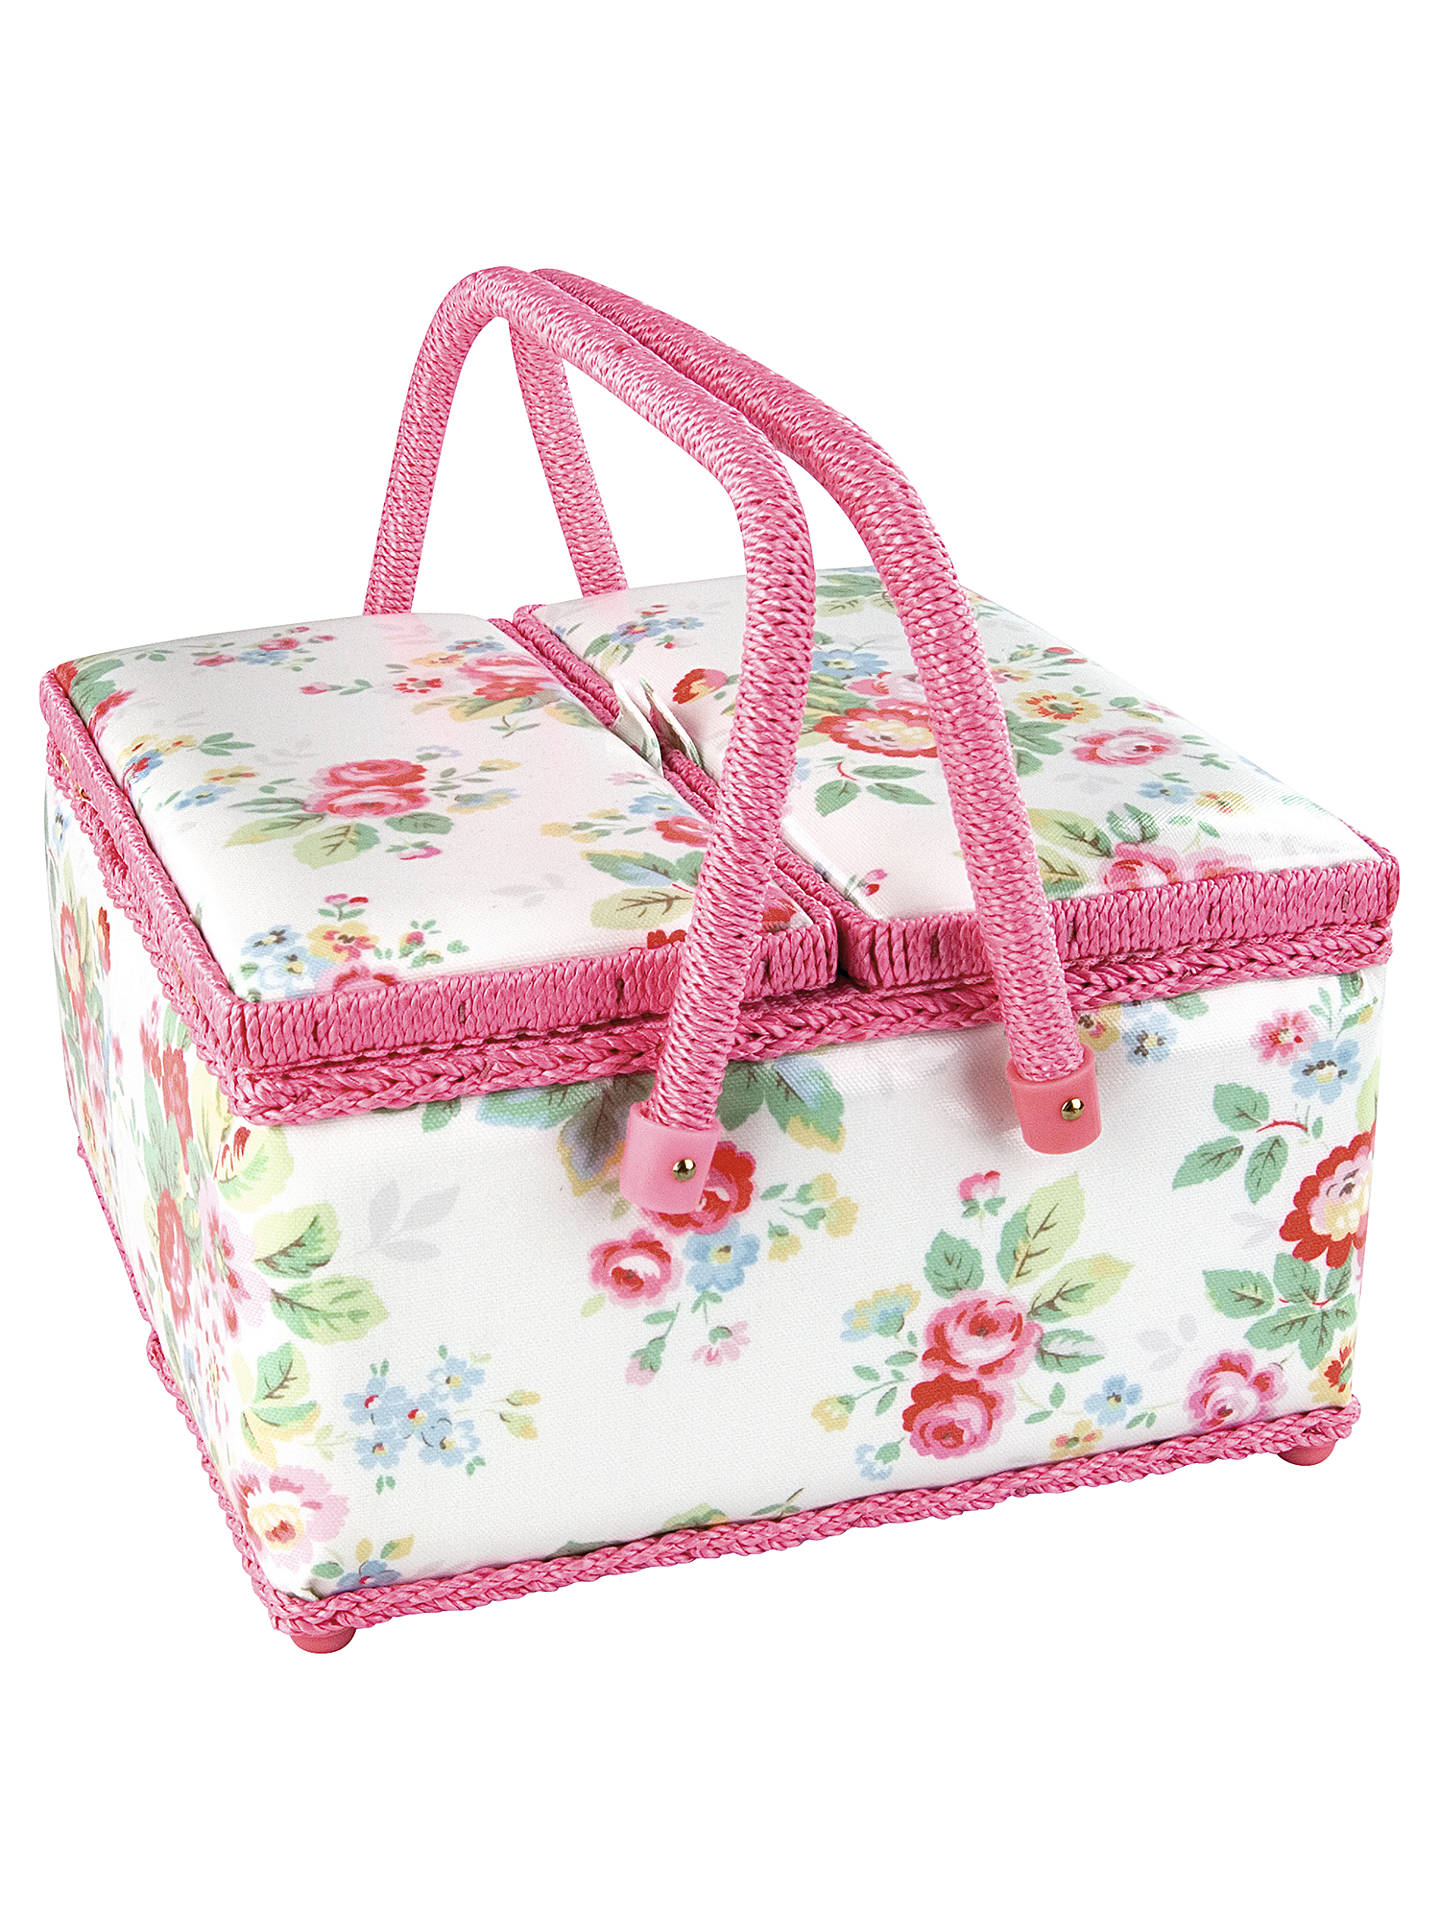 Cath Kidston Trailing Flowers Sewing Basket Twin Lid At